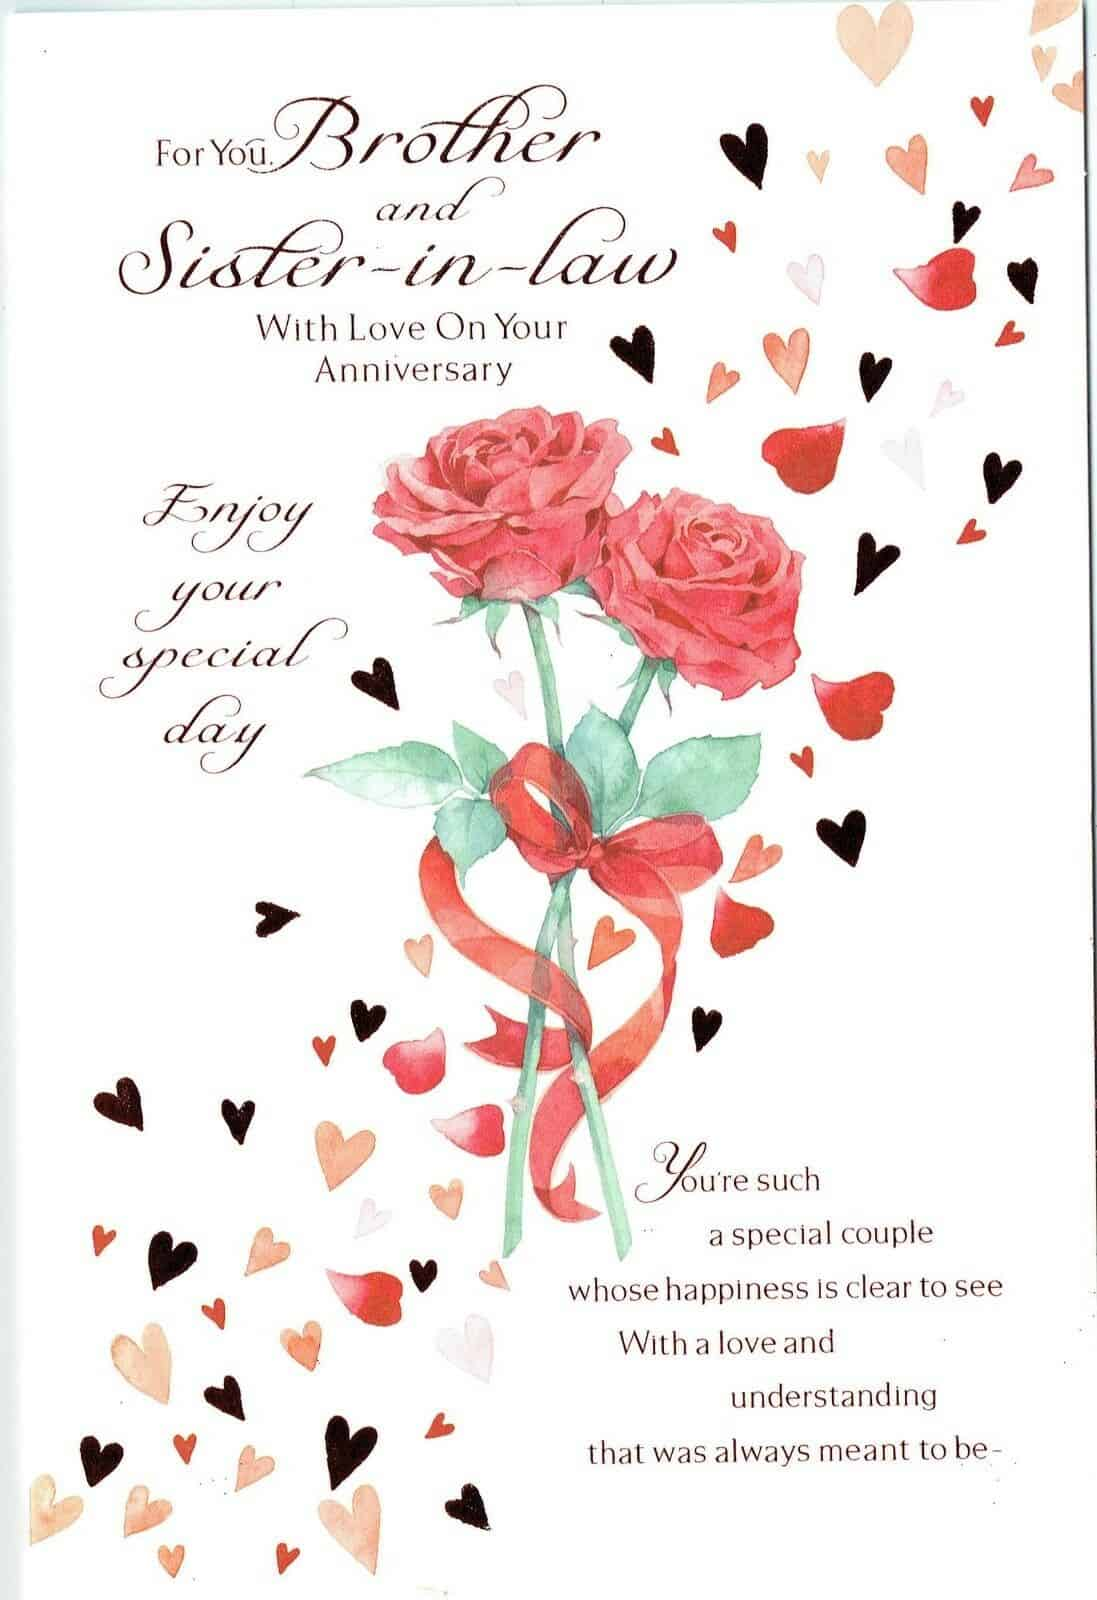 SISTER AND BROTHER-IN-LAW ANNIVERSARY CARD